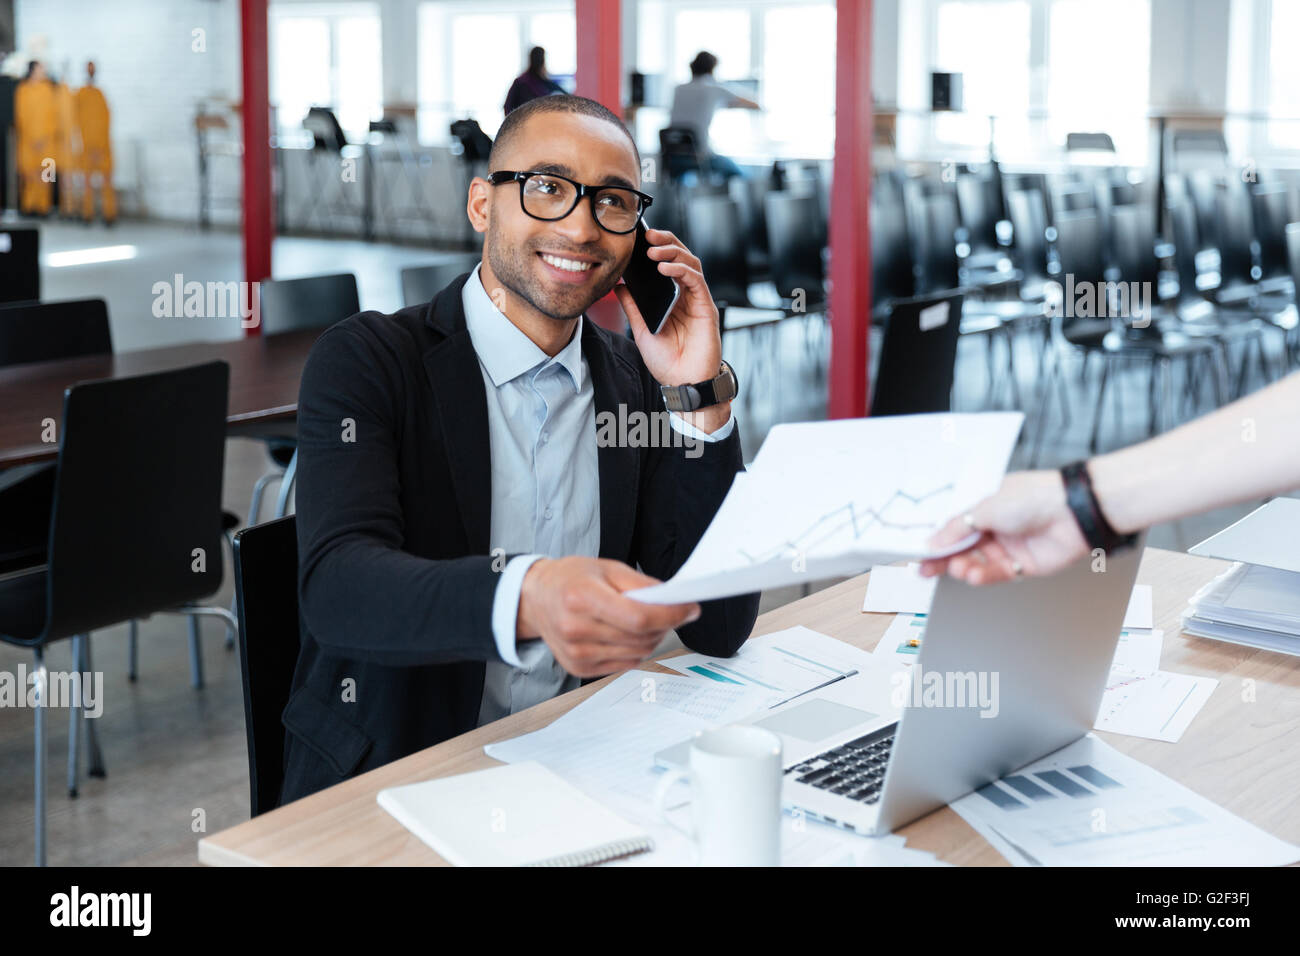 Smiling bisnessman giving papers to someone in office - Stock Image